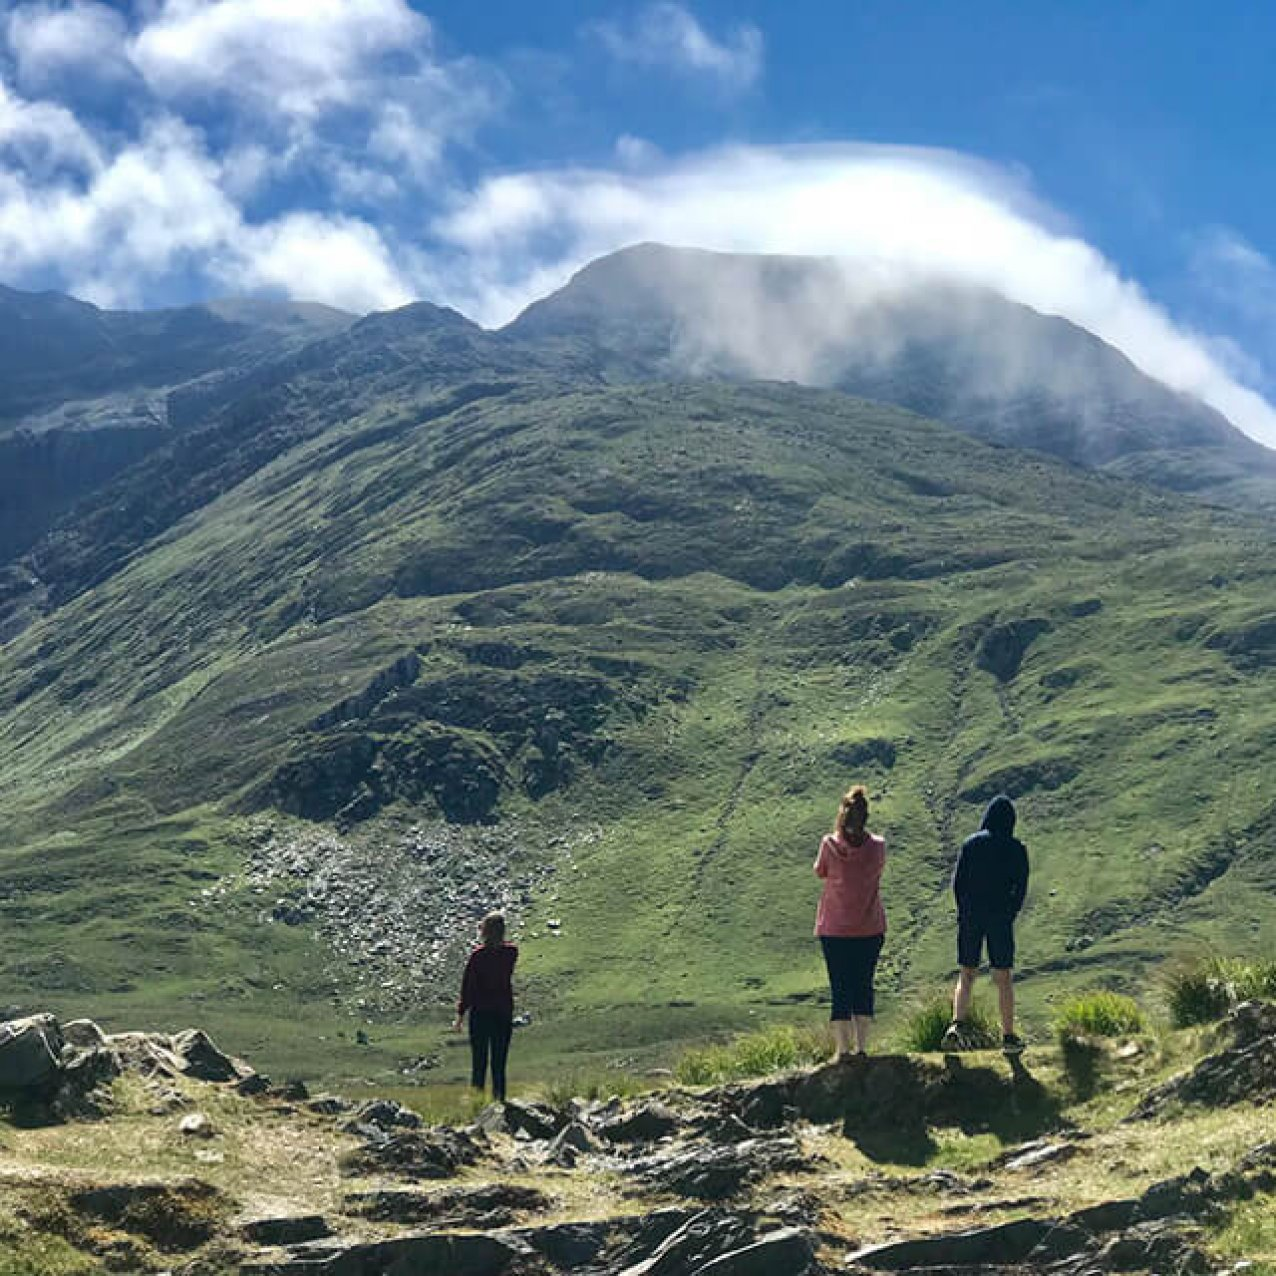 Three guests standing in front of Mweelrea mountain taking picture